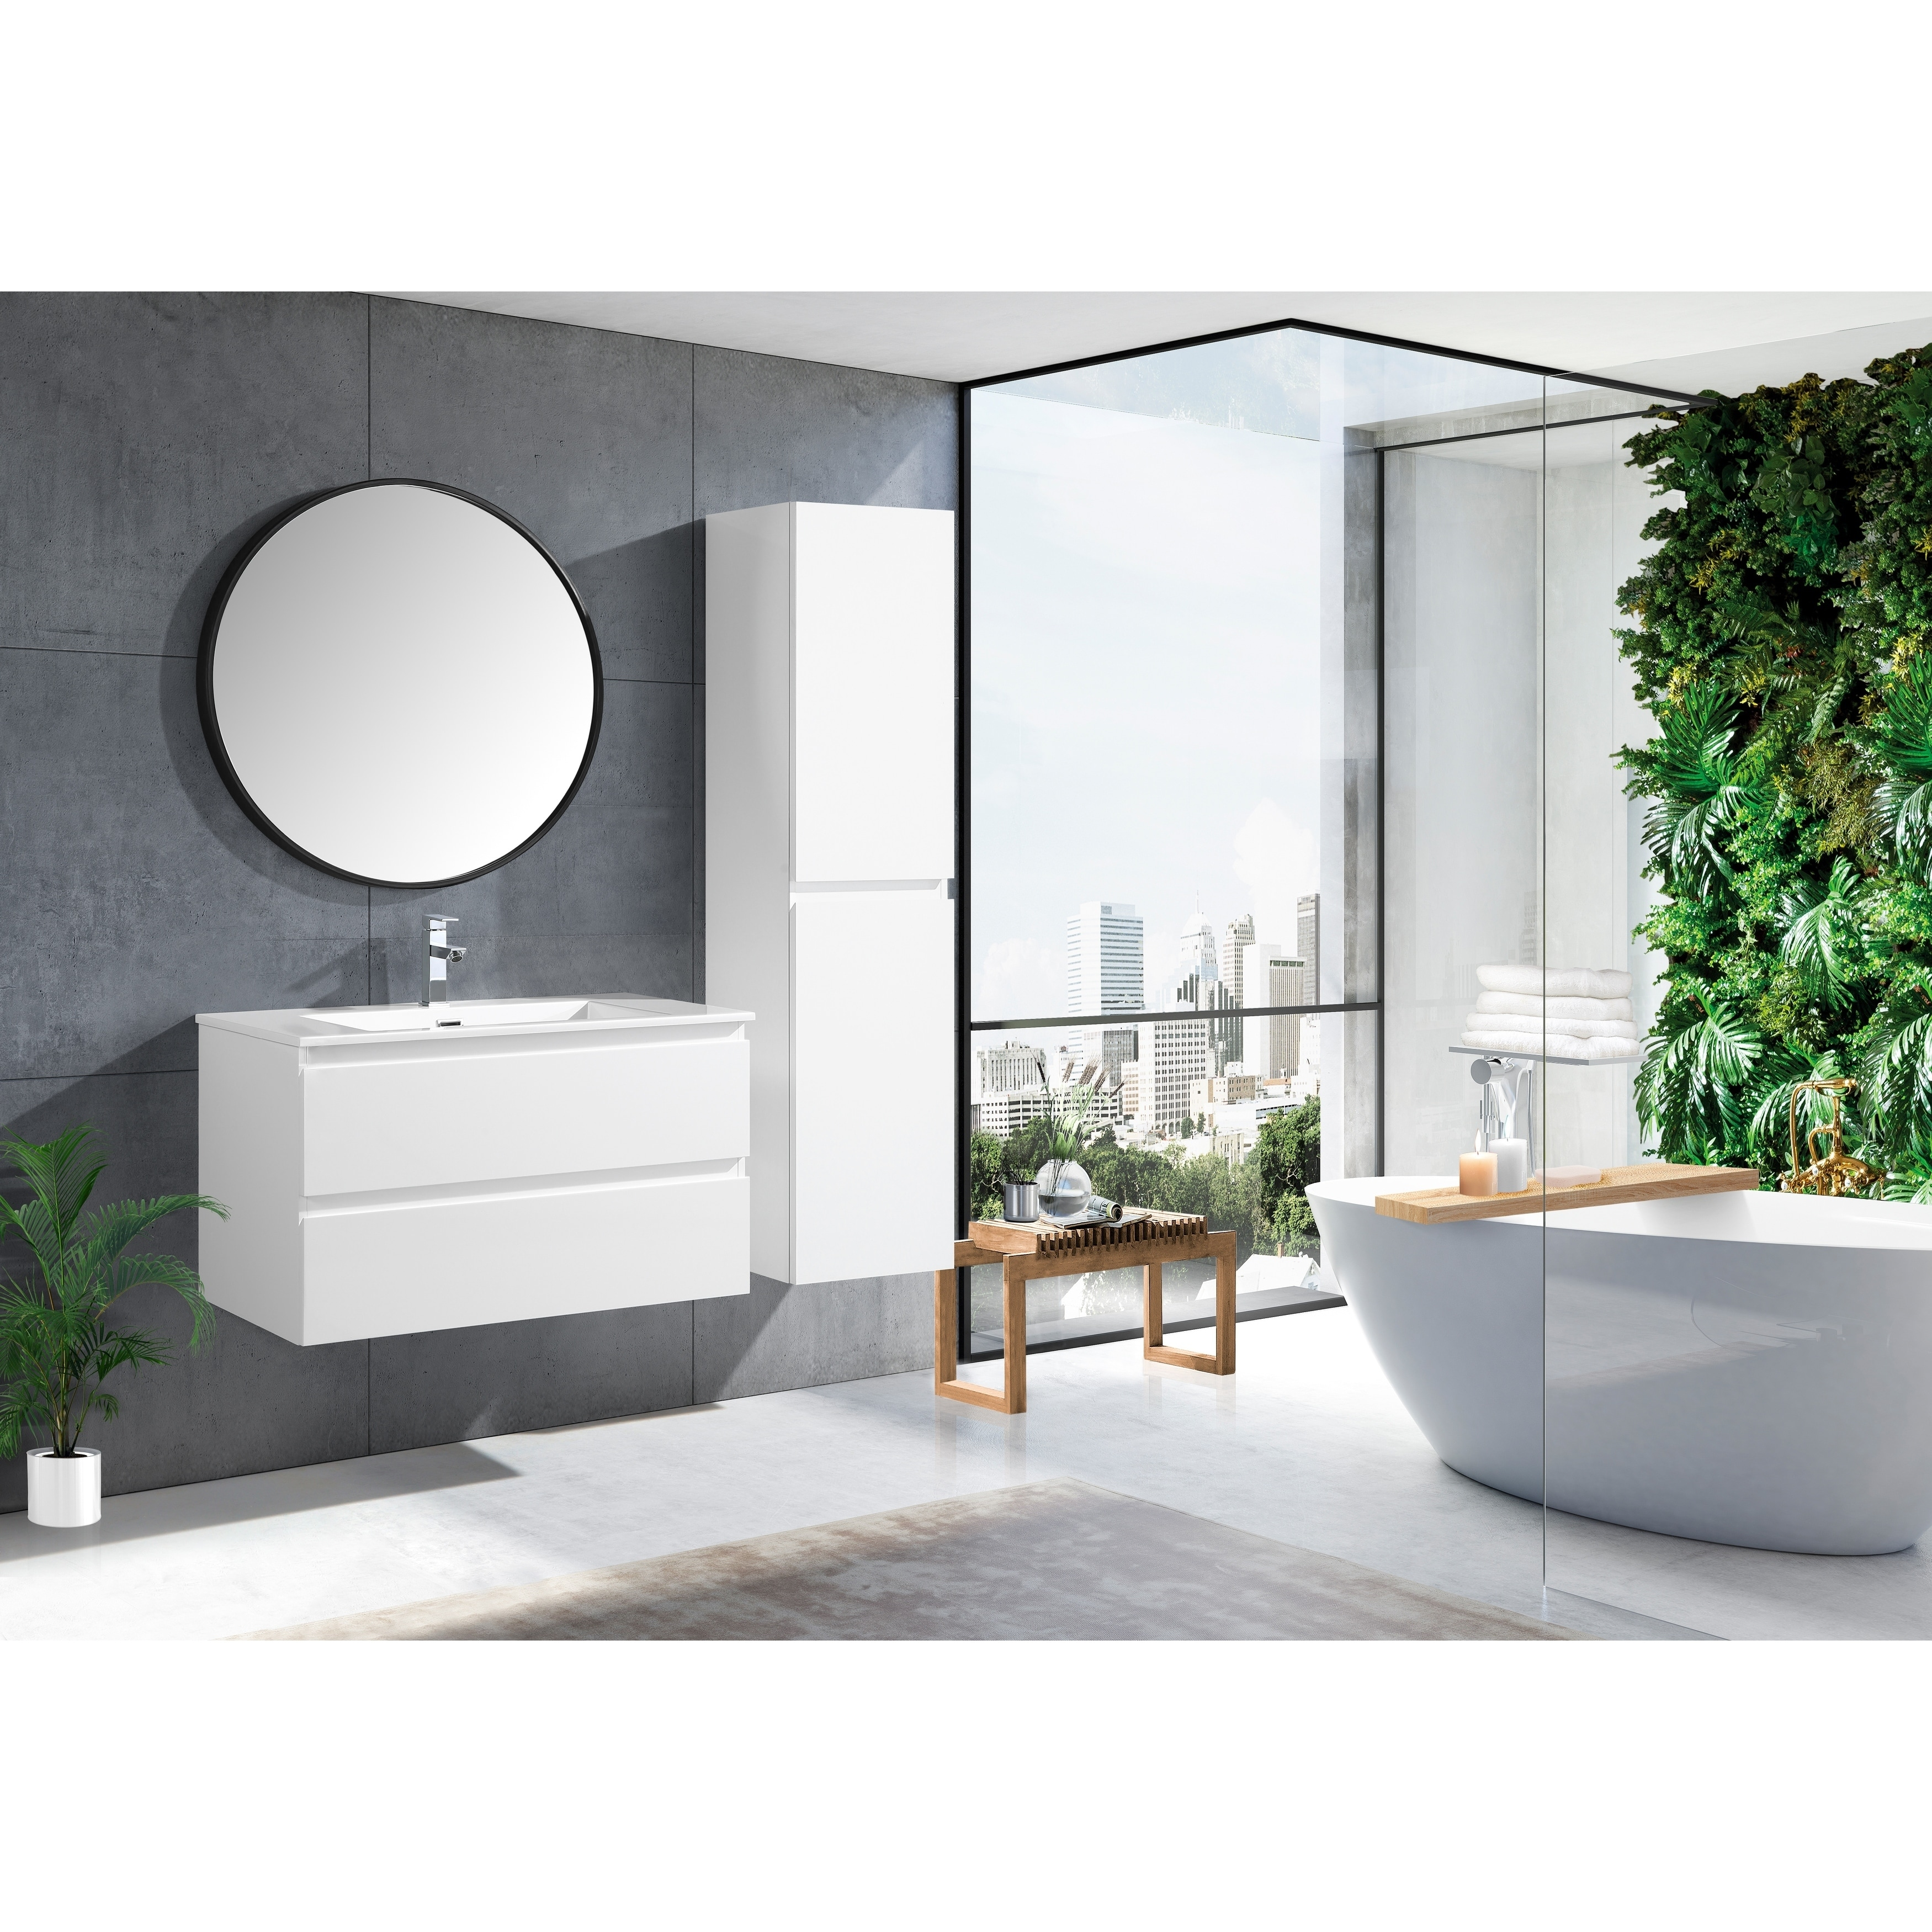 The Frost Collection 36 Inch Floating Modern Bathroom Vanity Overstock 20979057